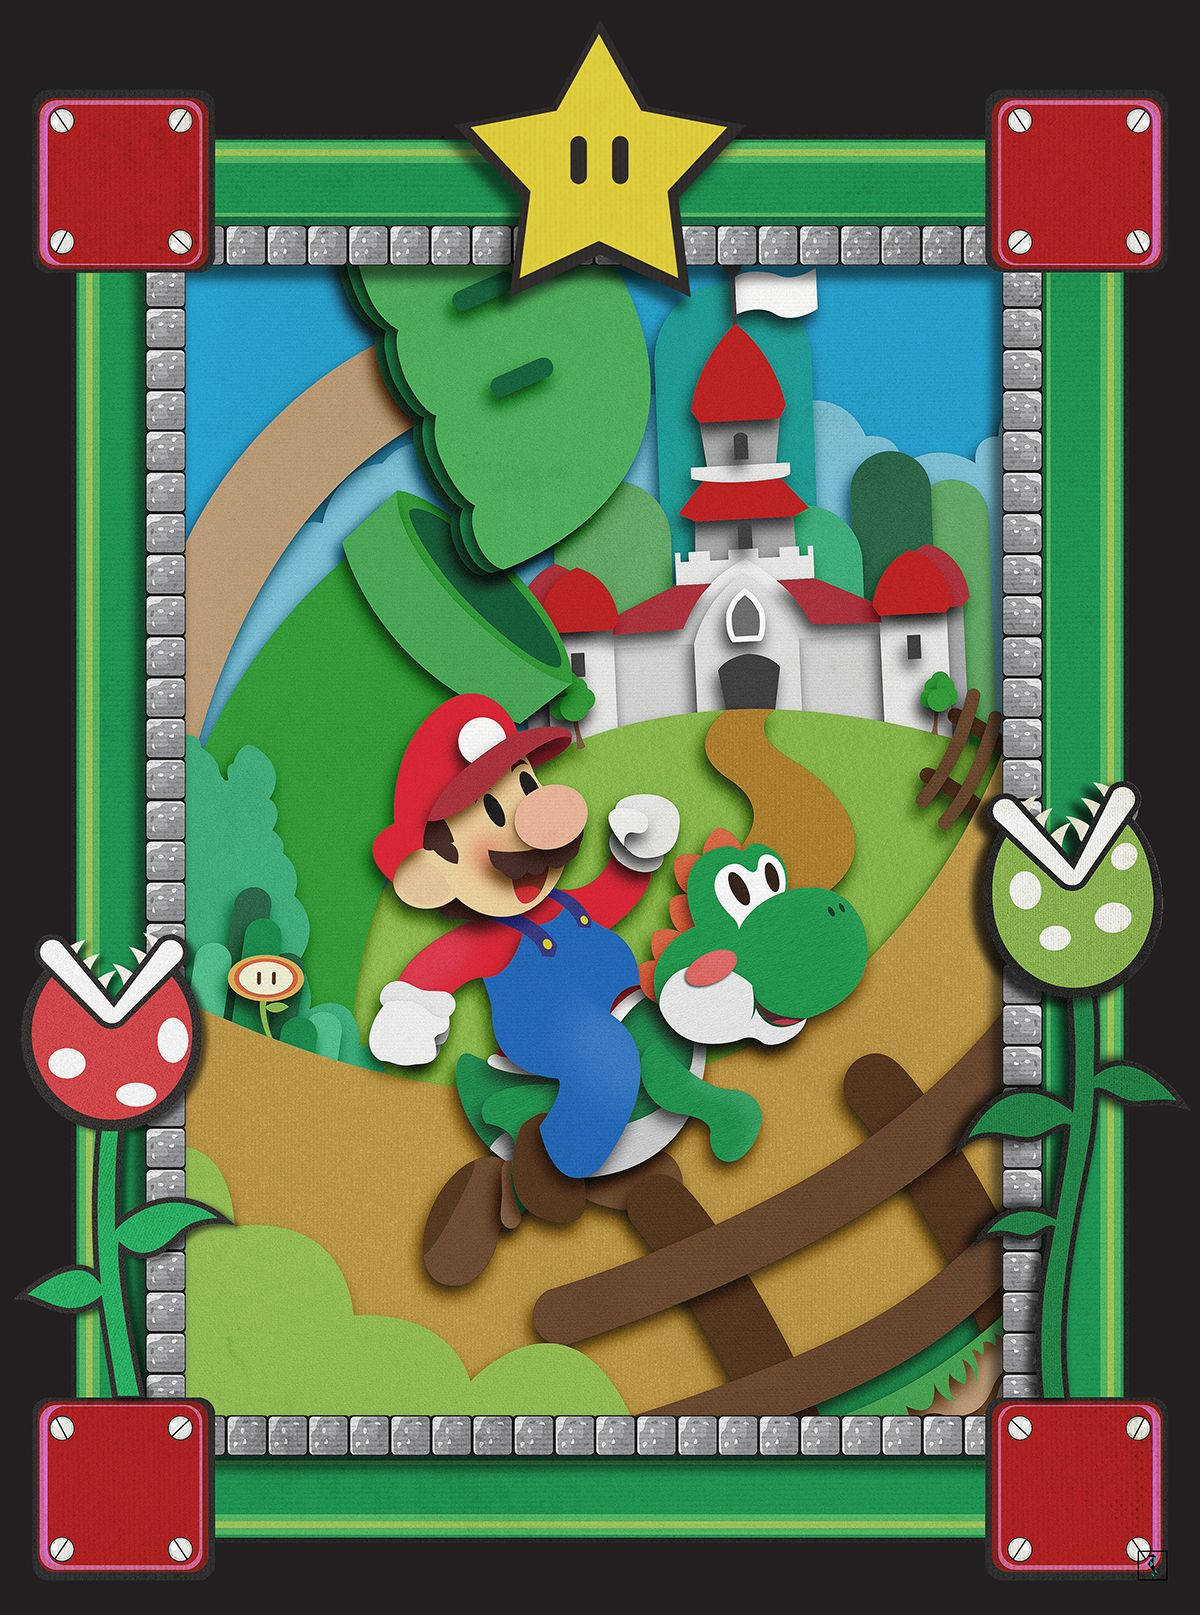 Paper Video Games Created by Marcus Nascimento (Mario